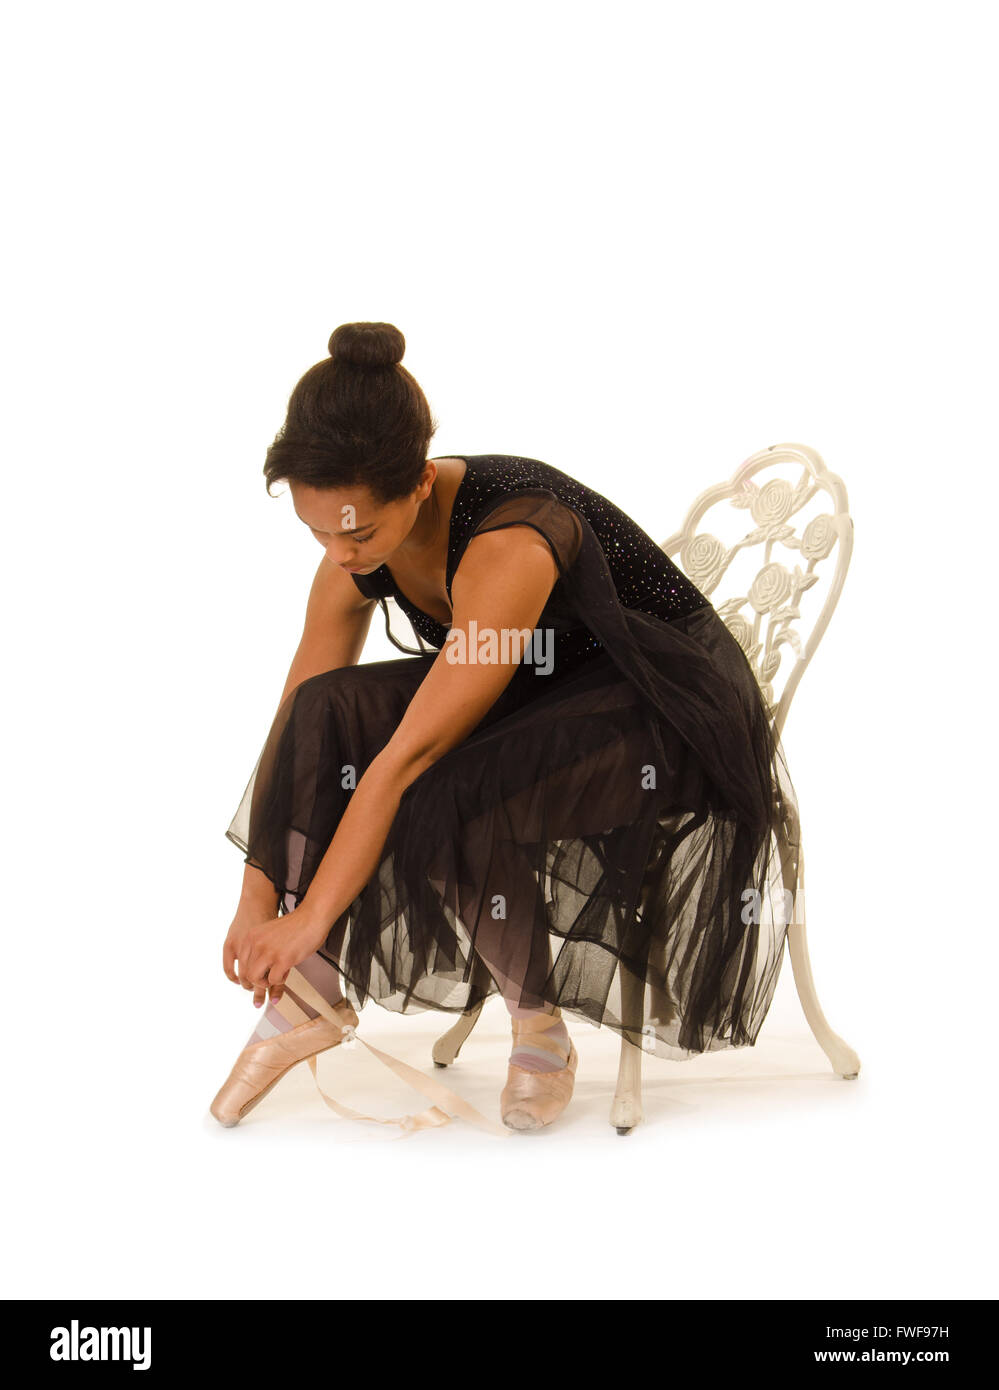 An African American Ballerina ties pointe shoes for dance class - Stock Image